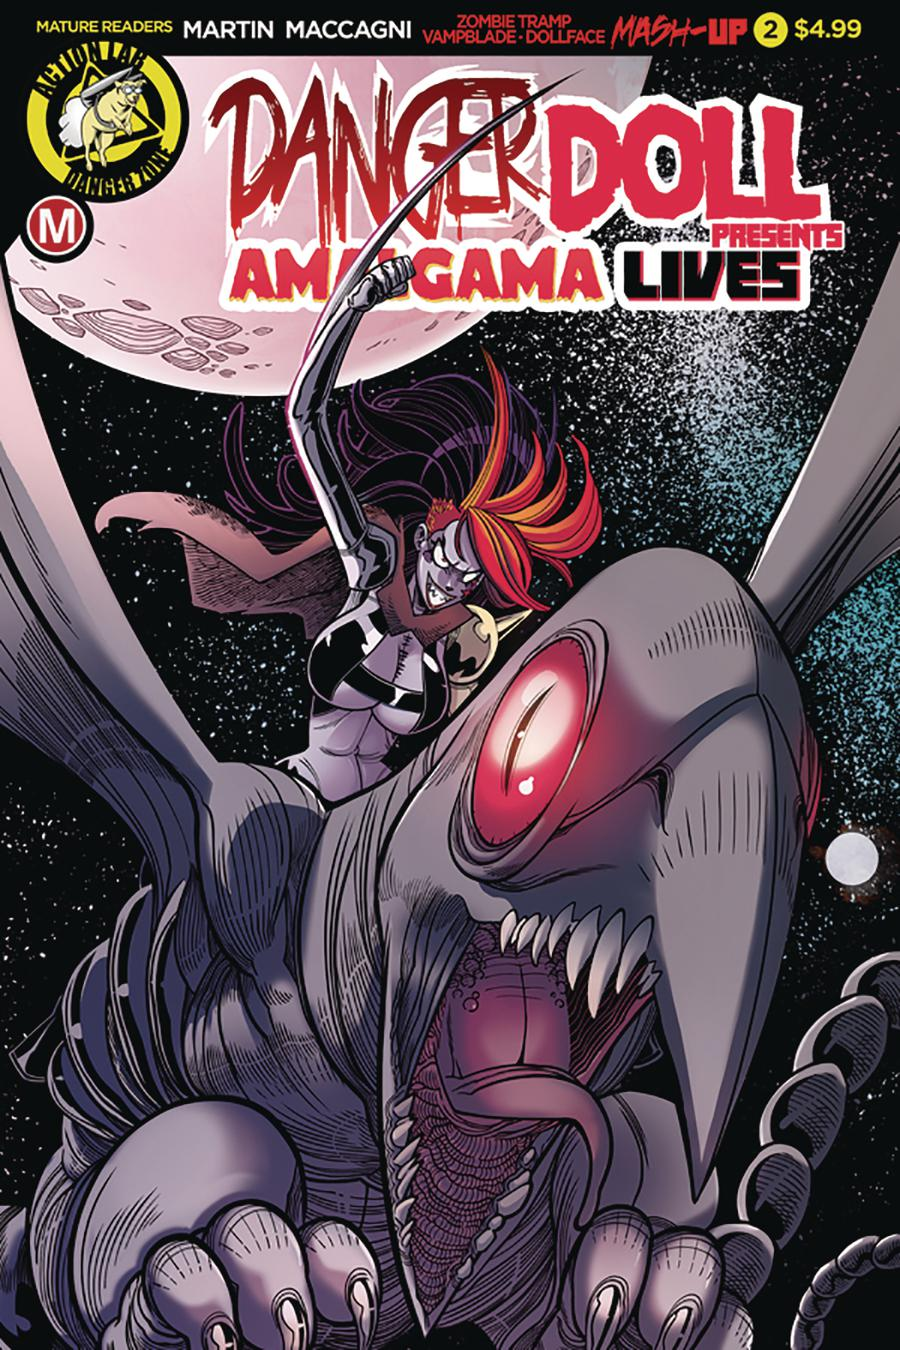 Danger Doll Squad Presents Amalgama Lives #2 Cover A Regular Marco Maccagni Cover